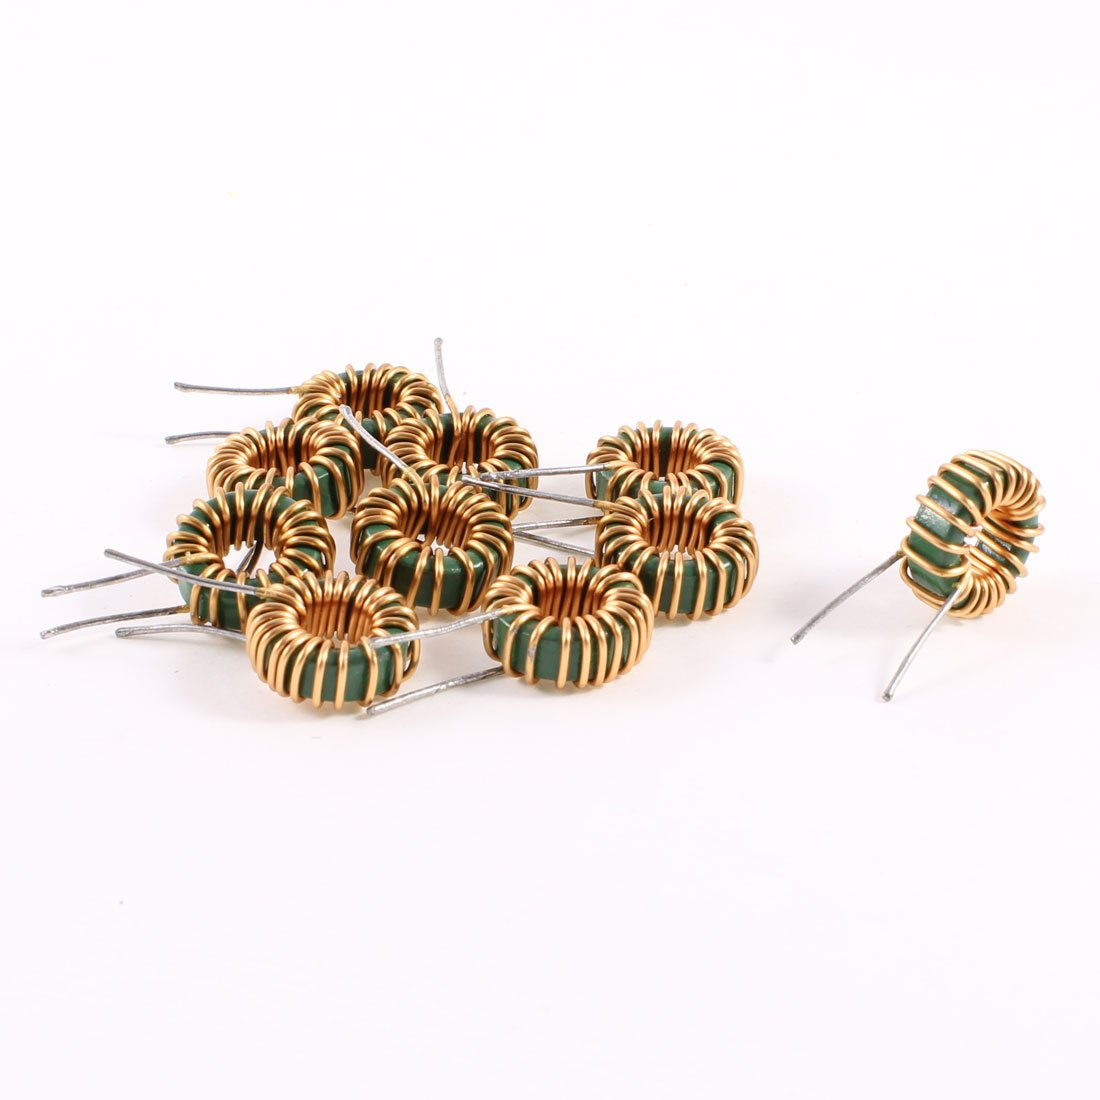 Uxcell a13071500ux0189 10 Piece Toroid Core Inductor Wire Wind Wound 3MH 40mOhm 3 Amp, Coil